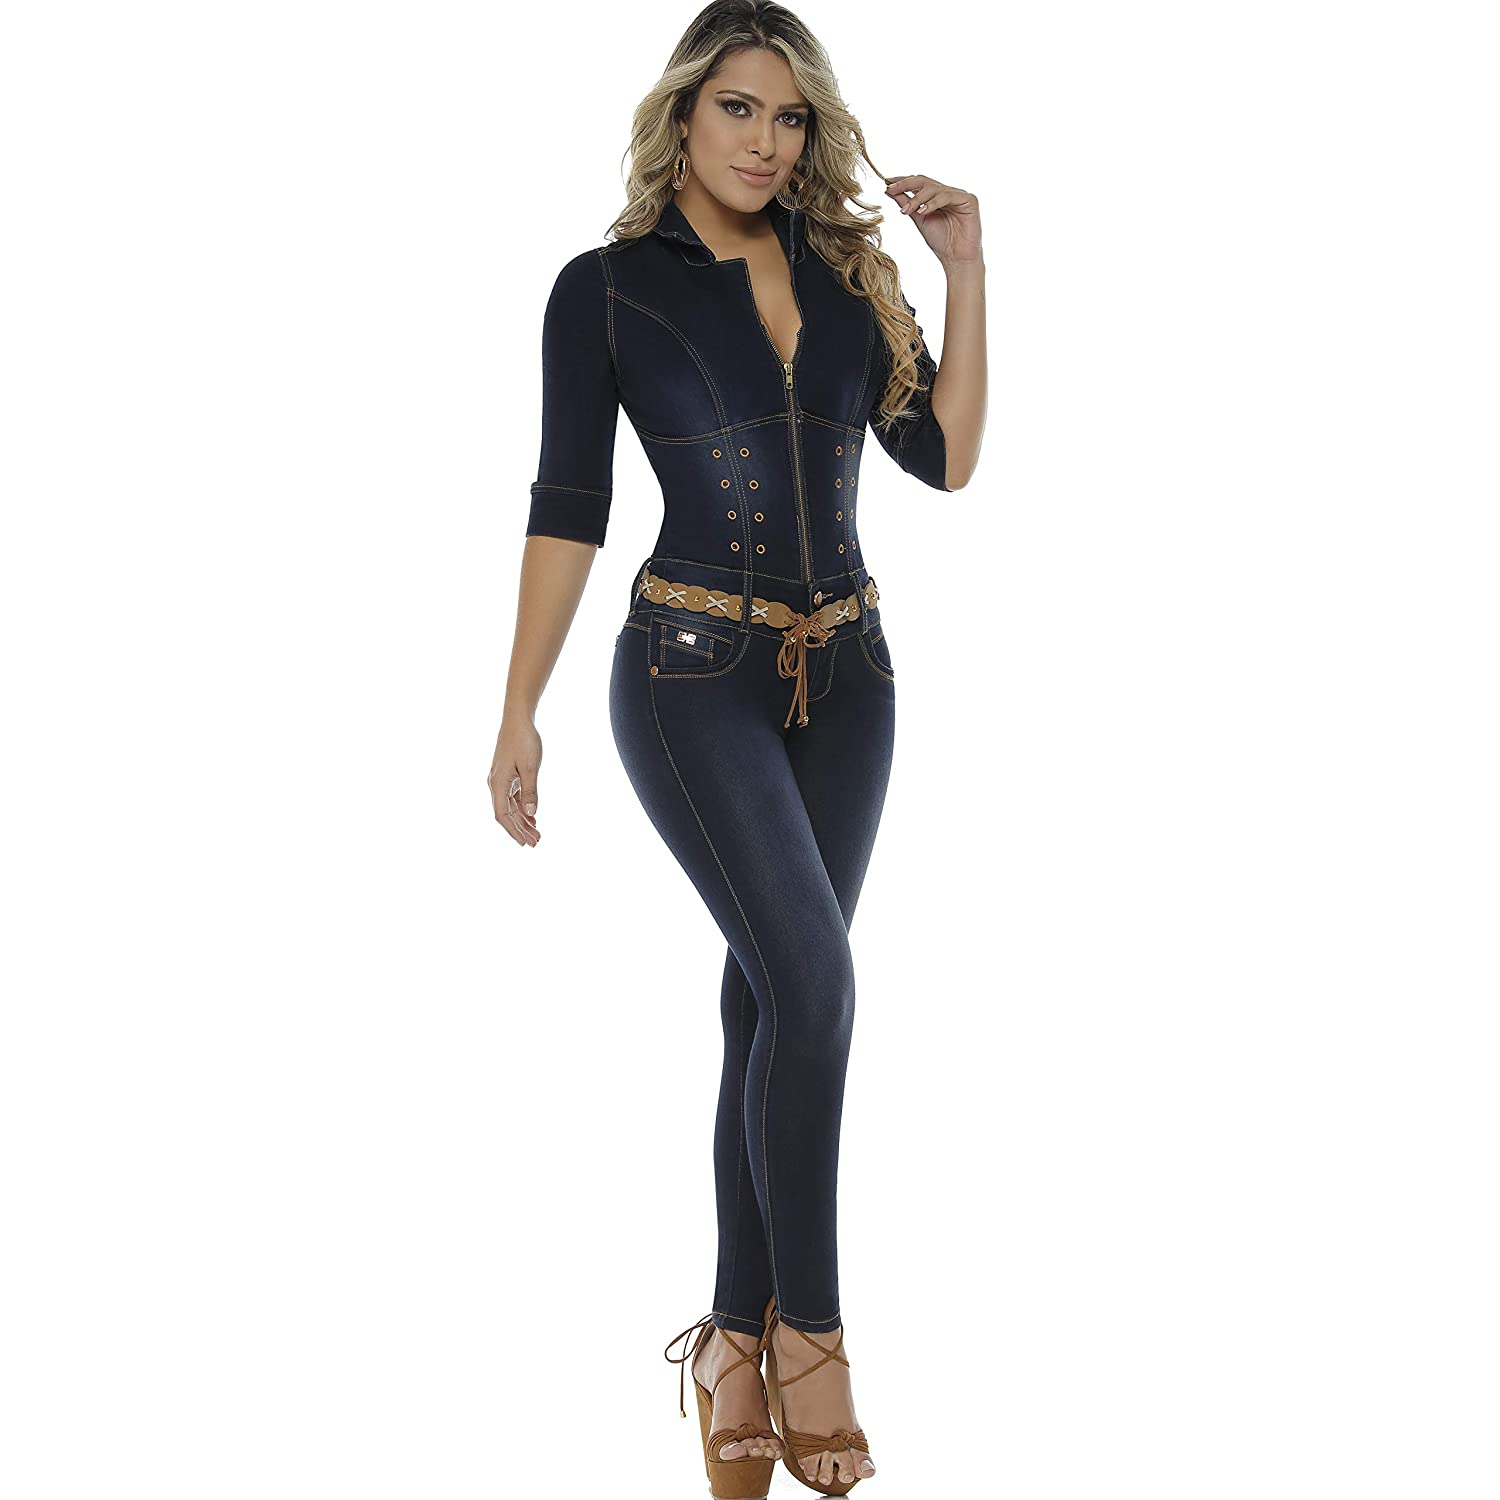 6ca73b827a89a BUTT LIFTING SKINNY JUMPSUITS FOR WOMEN  Heart shape seam on top of the  rear lifts and shapes the buttocks